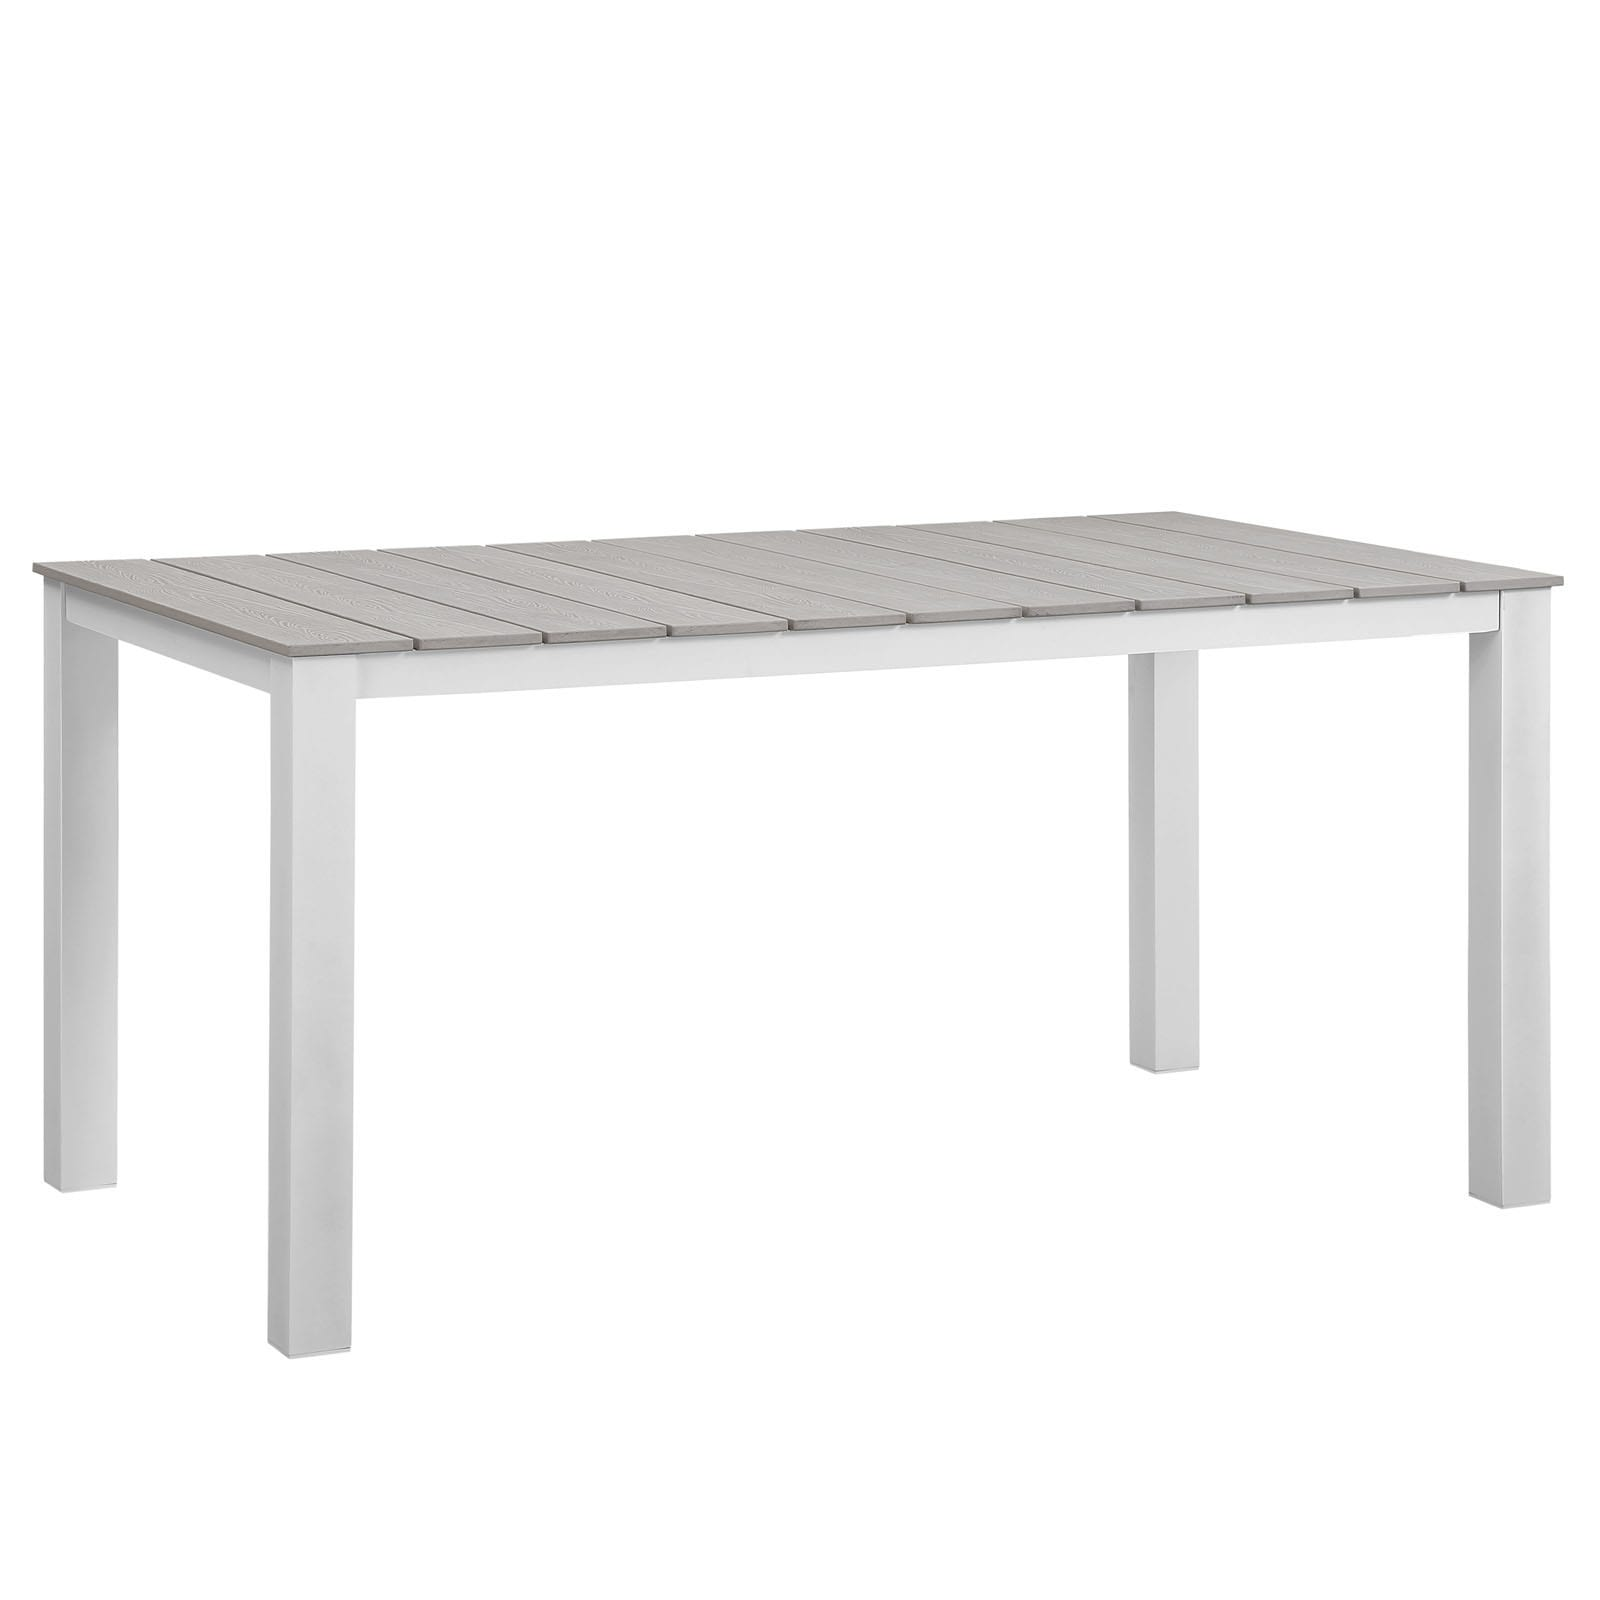 "Main 63"" Outdoor Patio Dining Table"